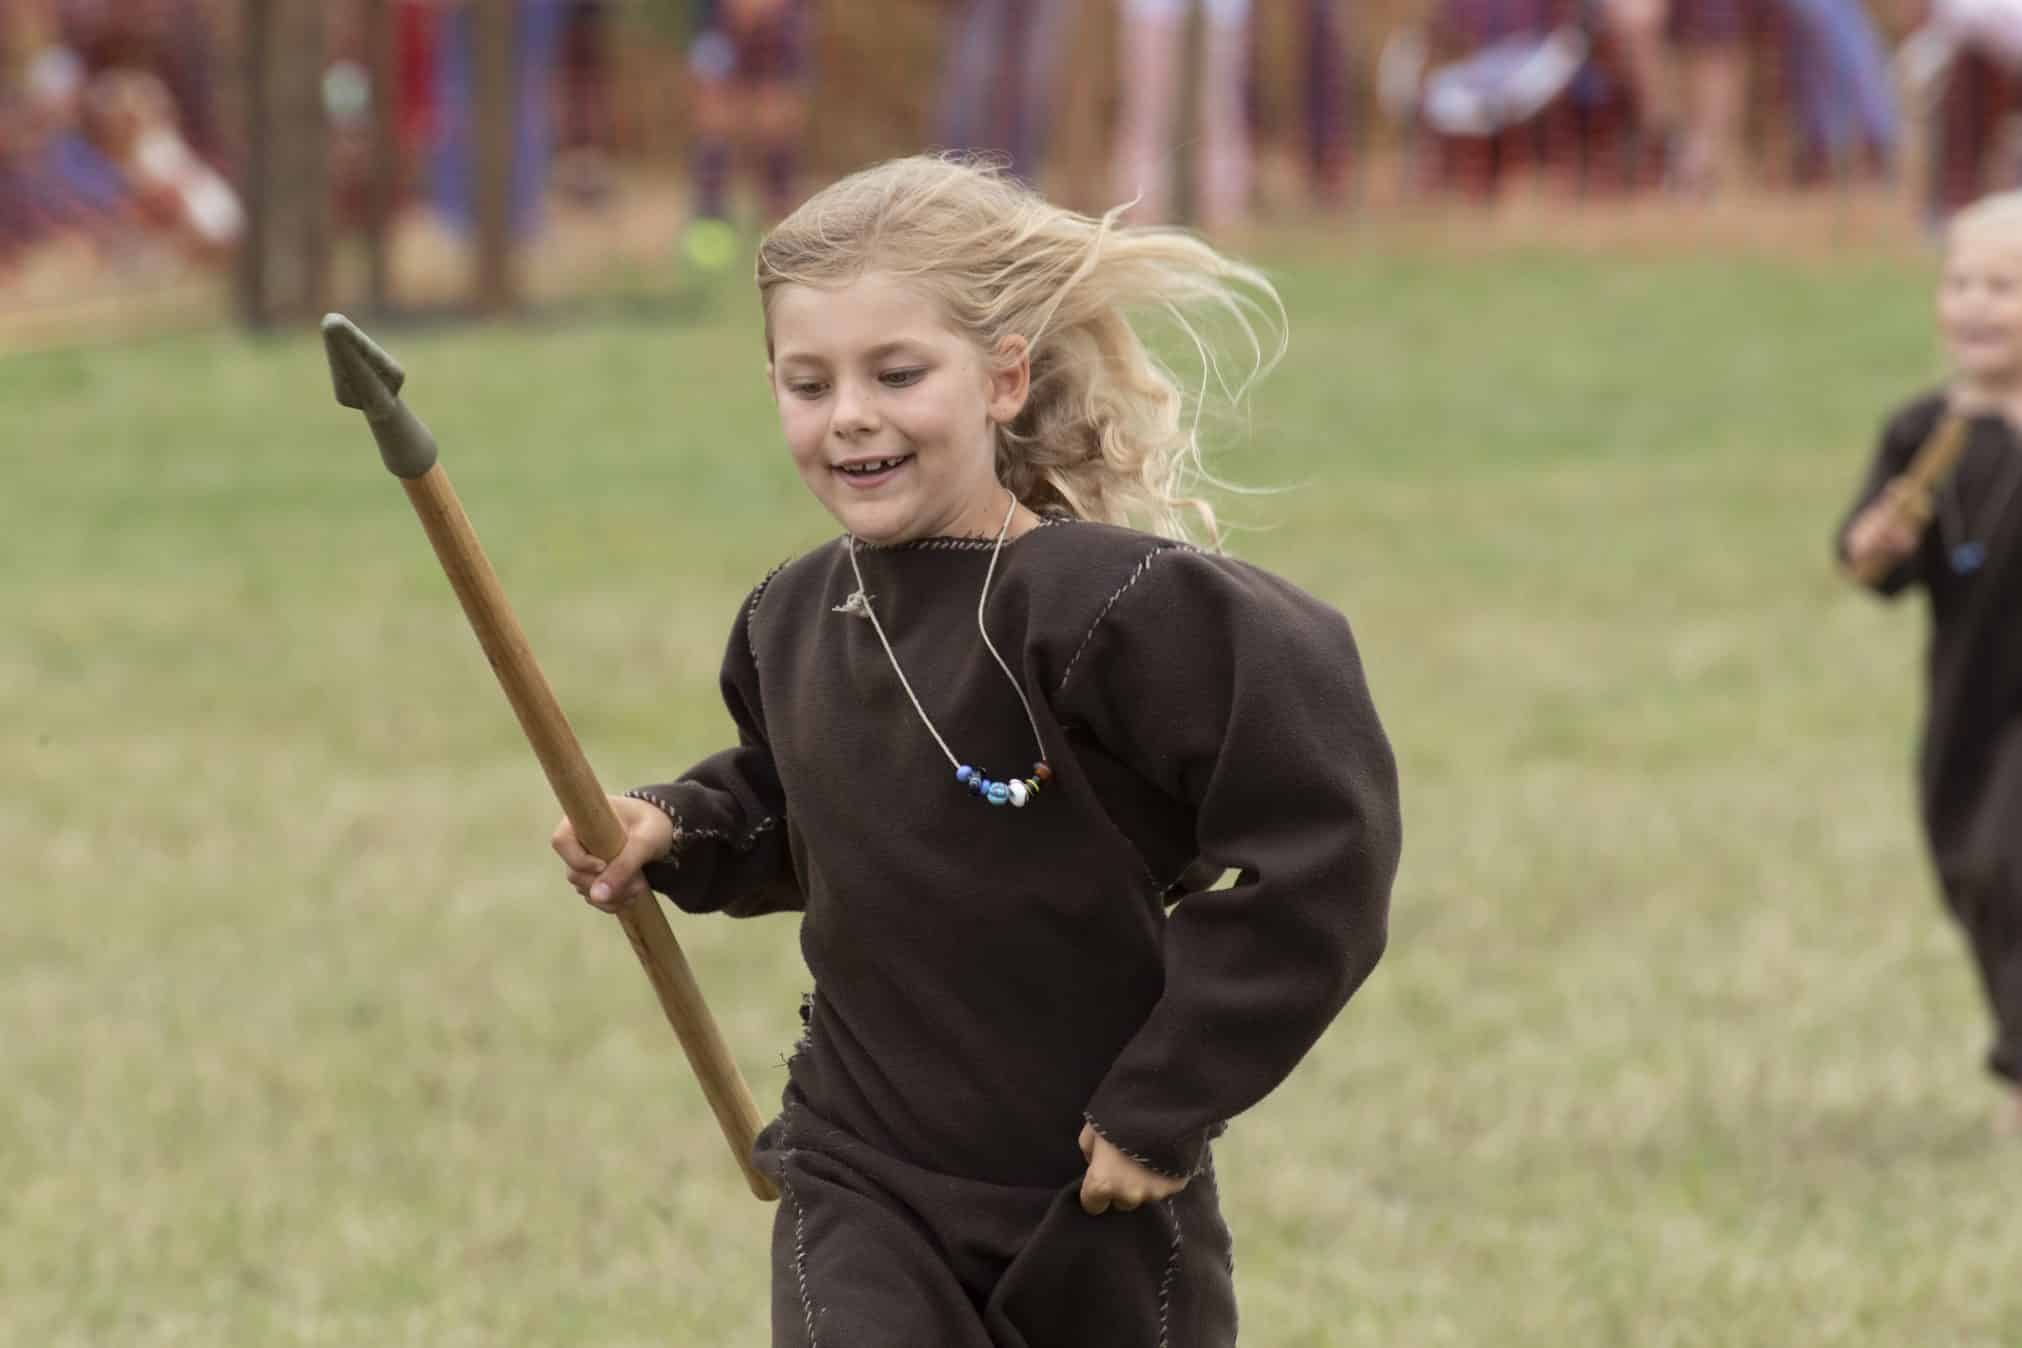 A Viking girl running with her spear at Green Fayre, Beacon Country Park